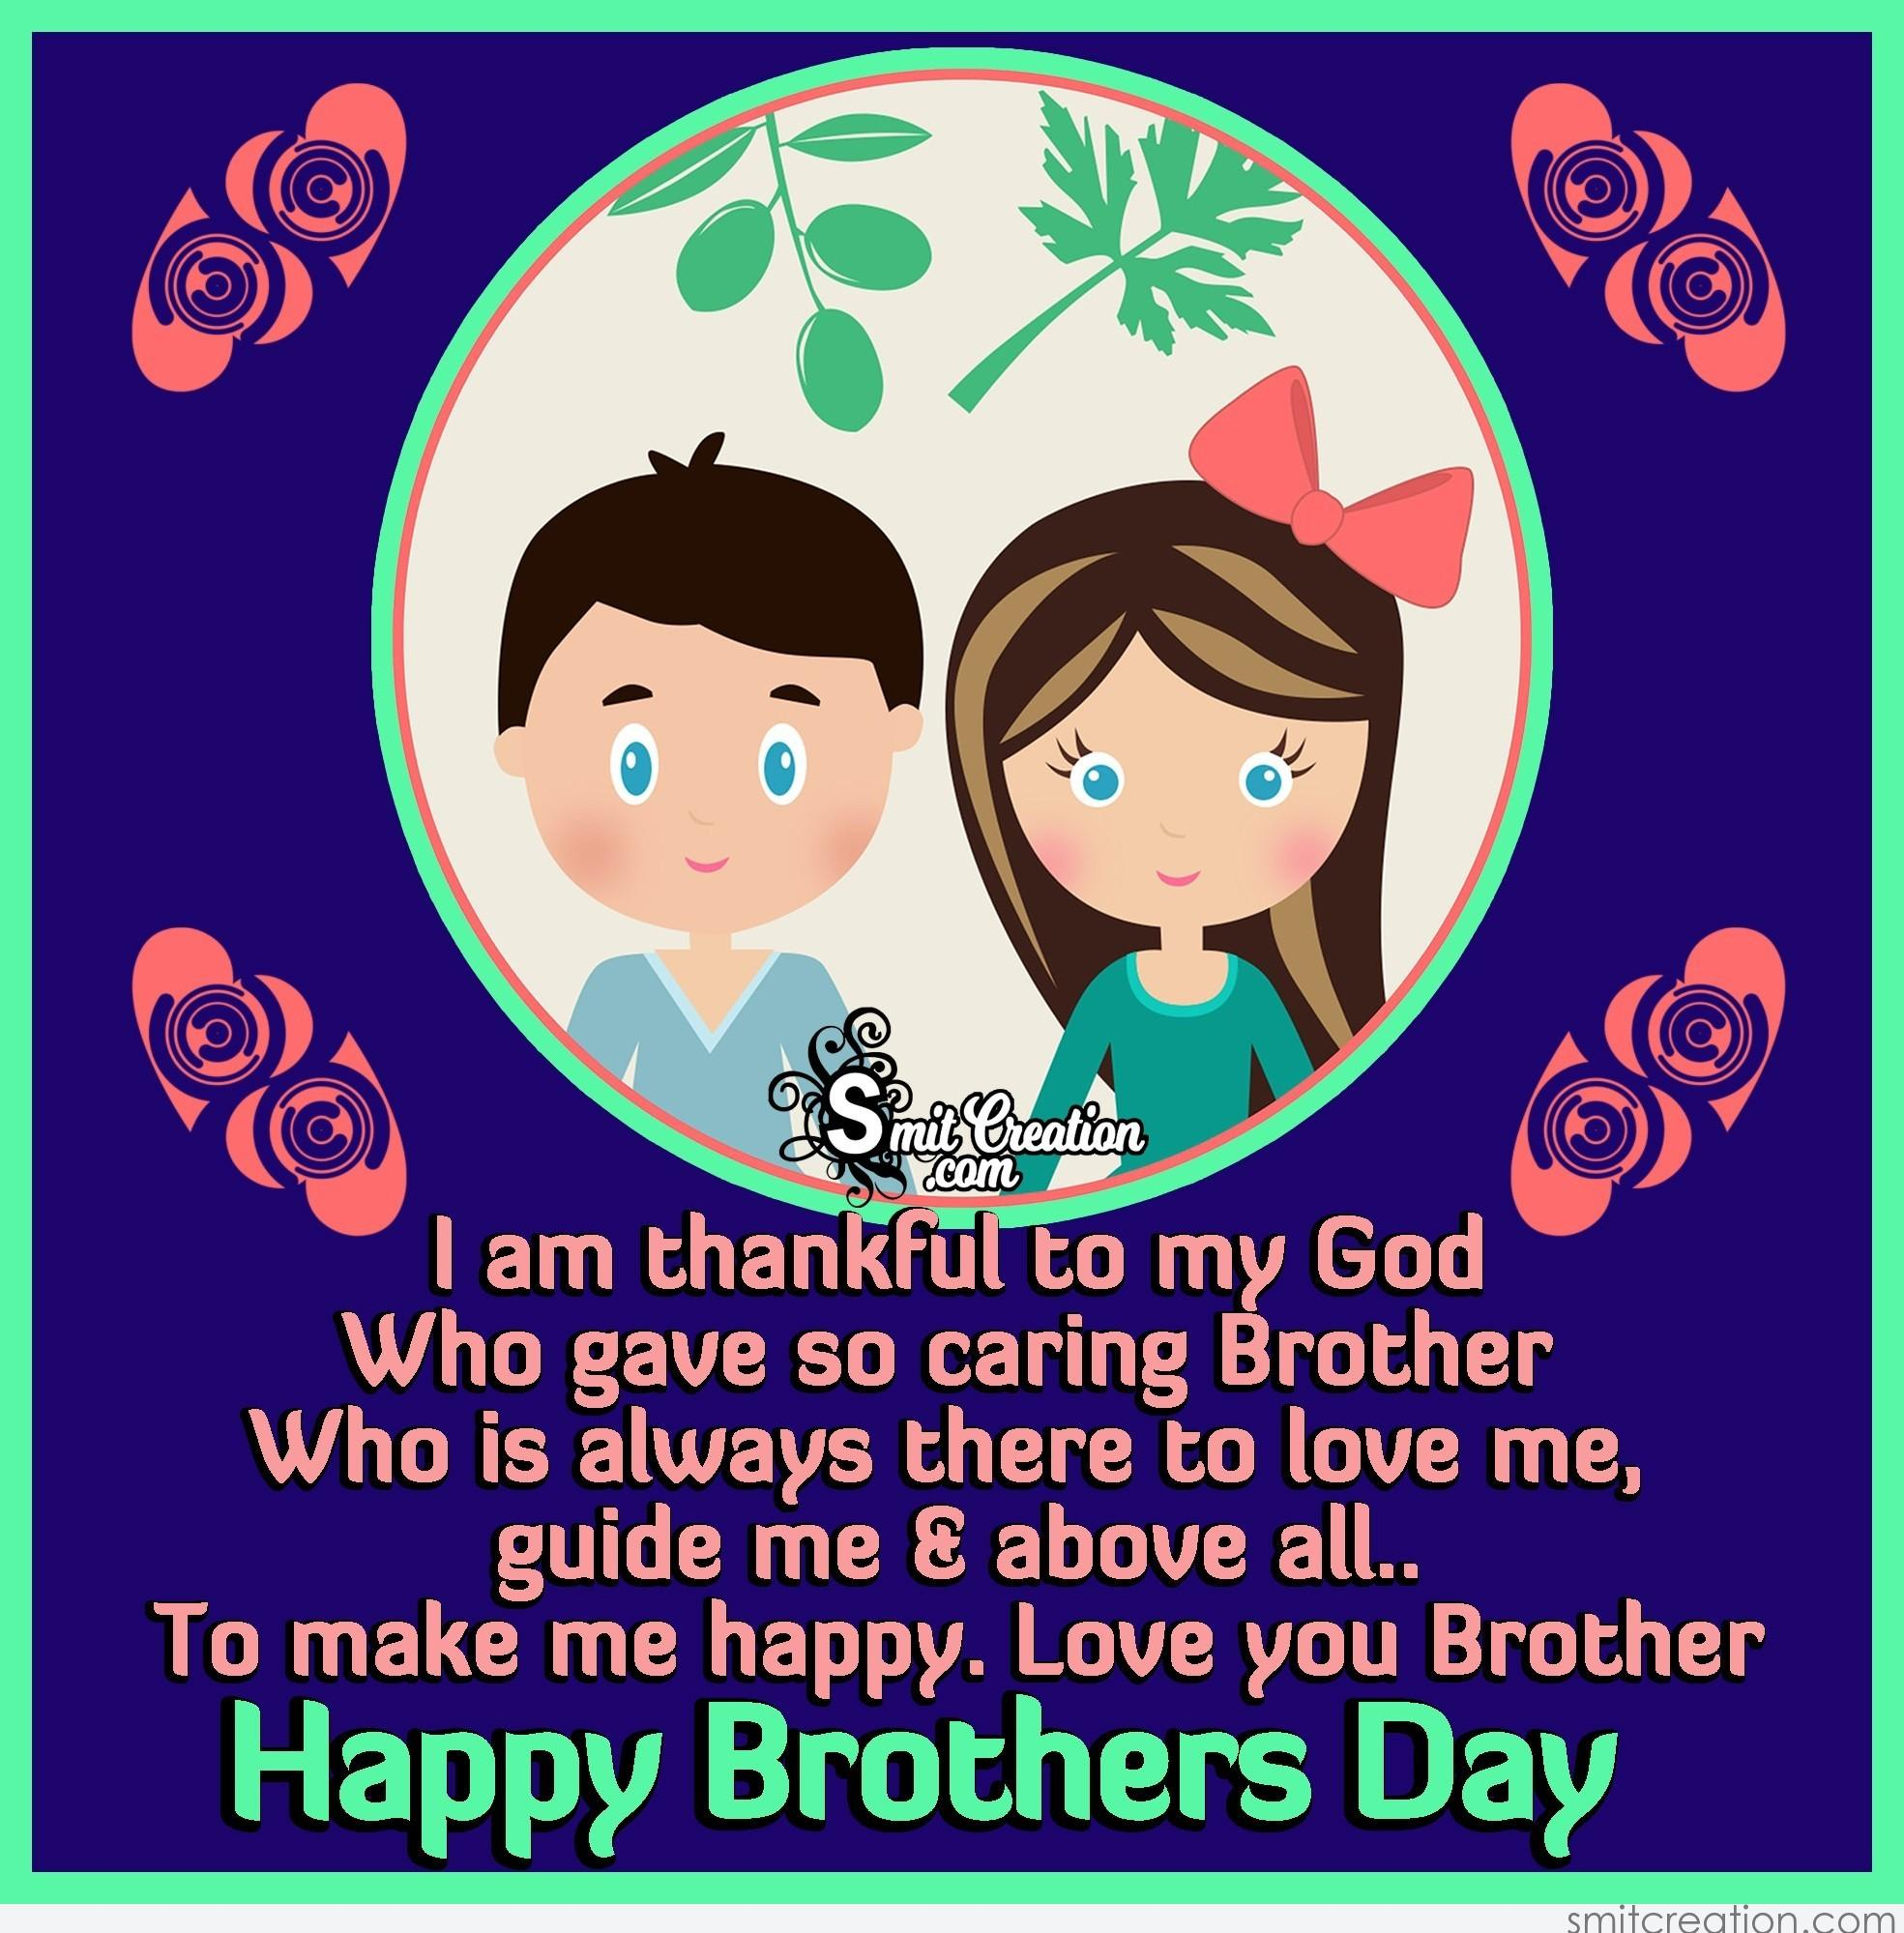 Brothers Day Pictures and Graphics   SmitCreationcom   Page 2 1969x1999